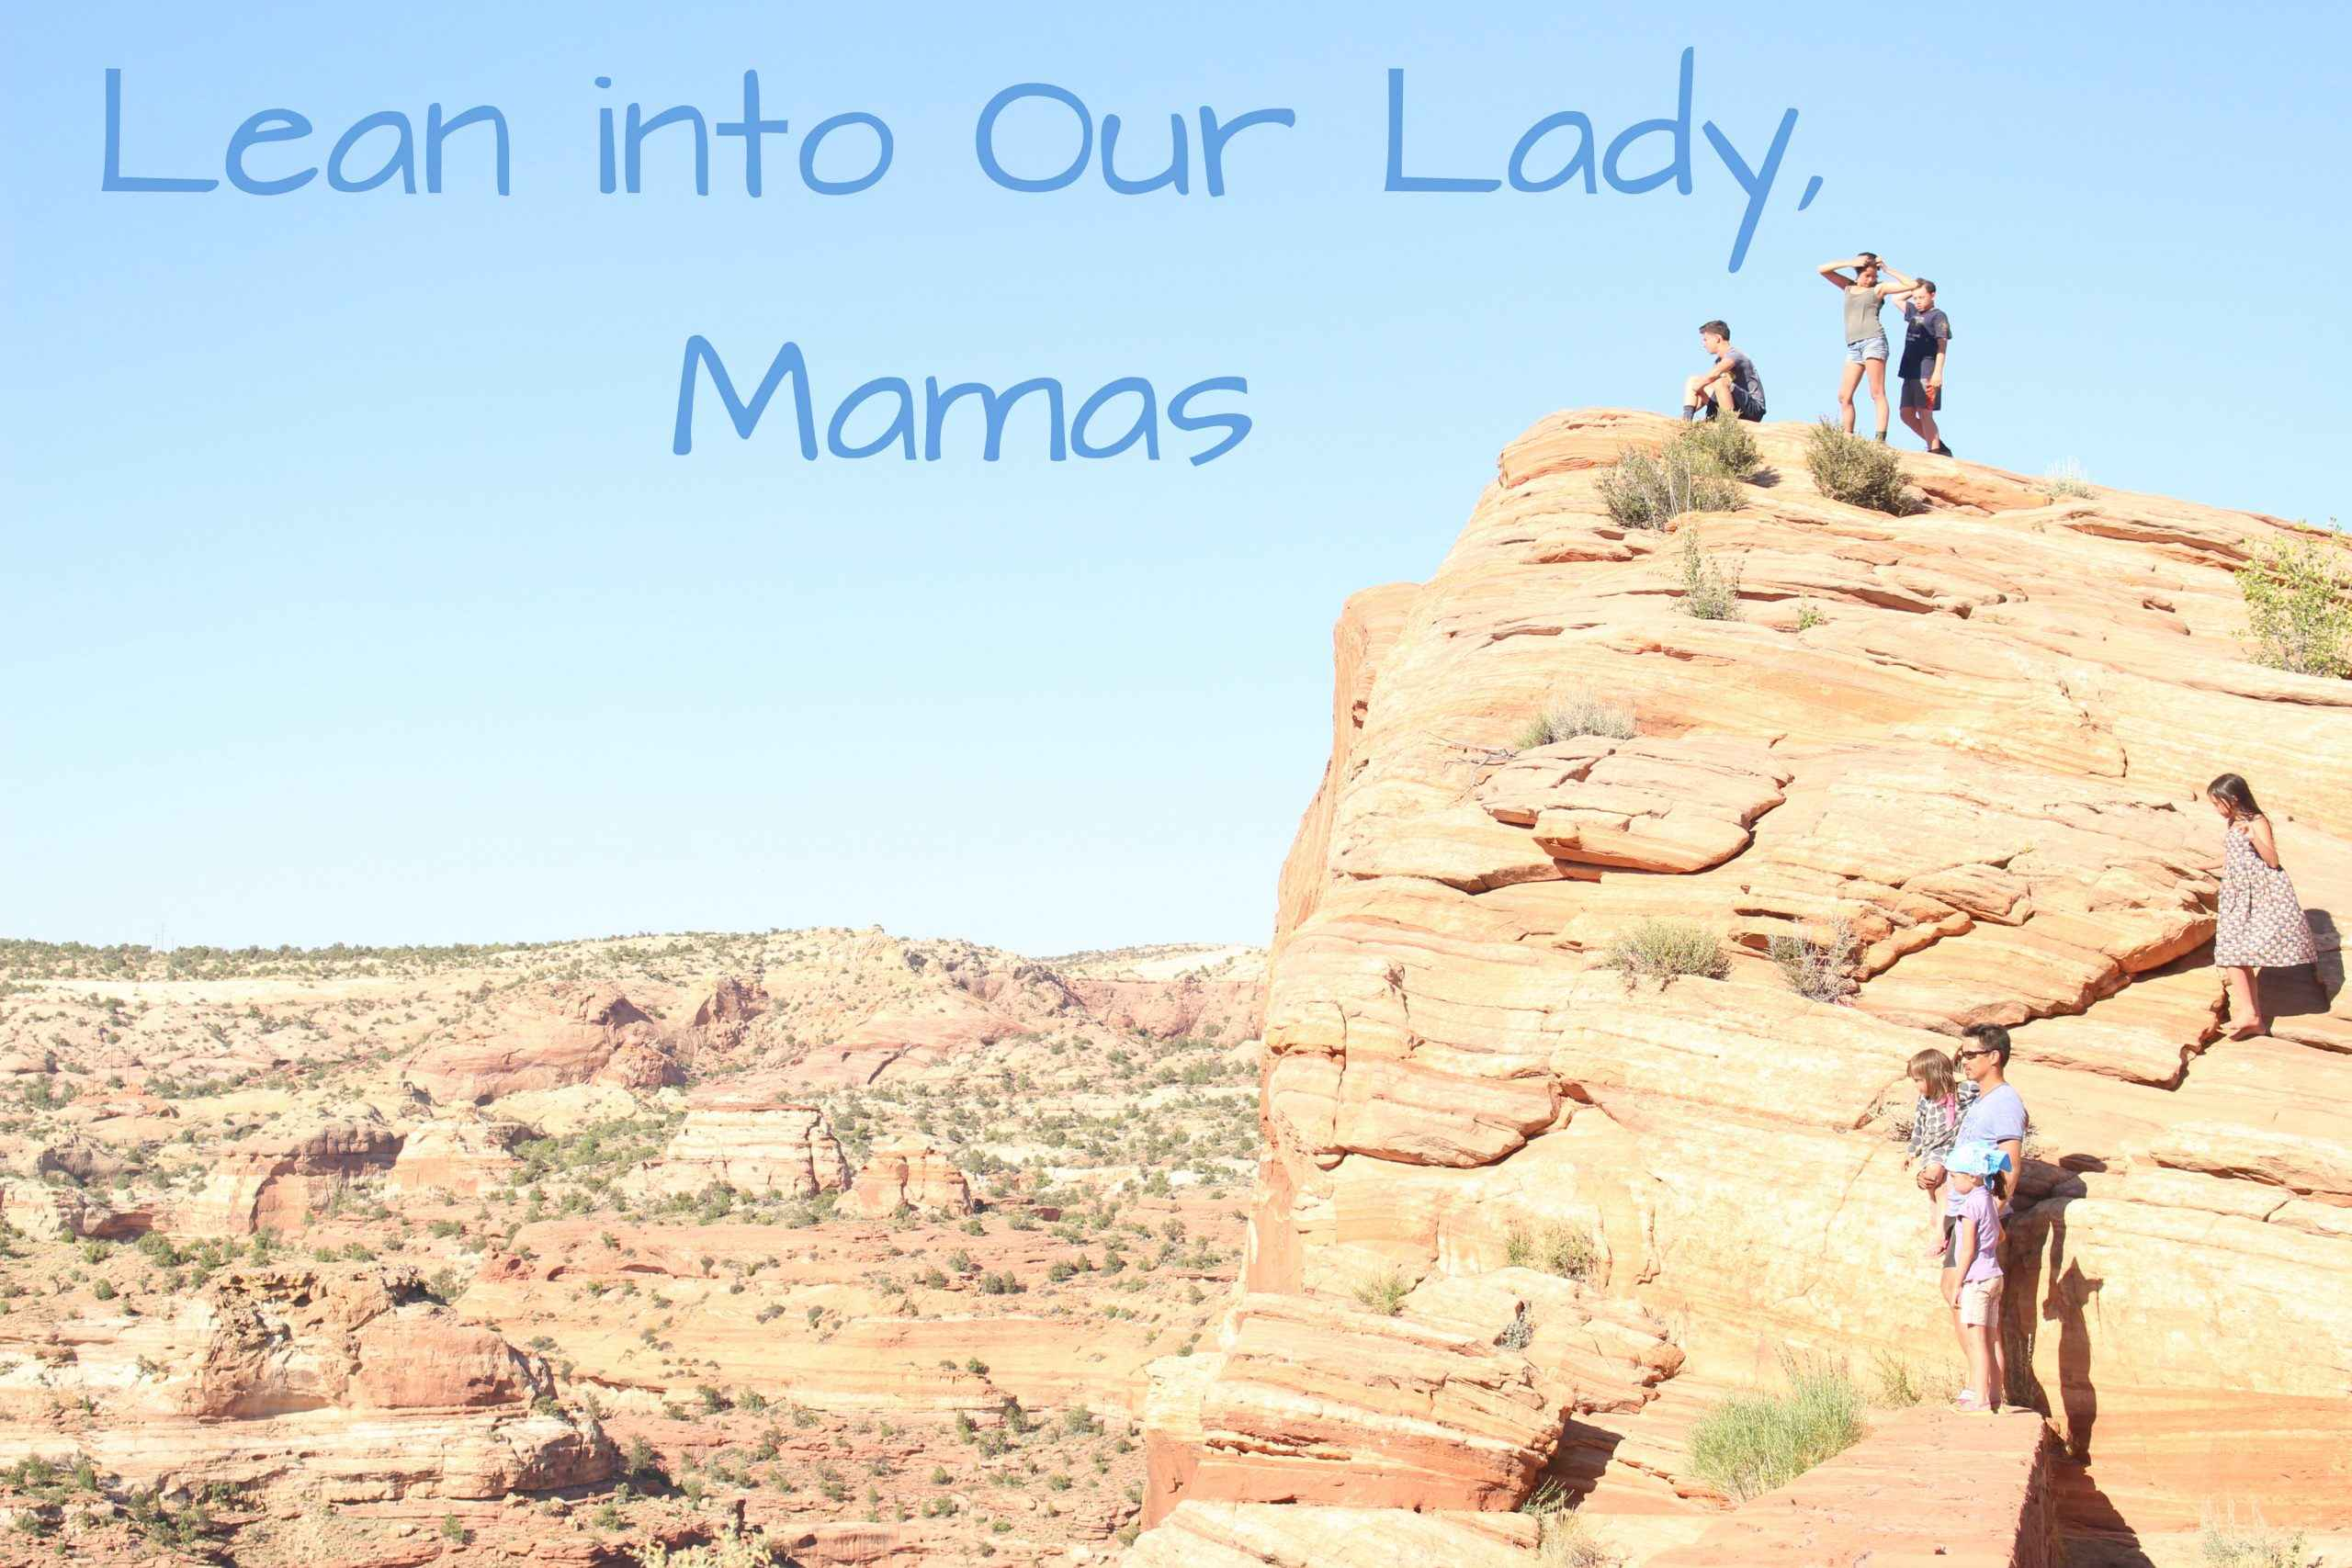 Lean into Our Lady, Mamas